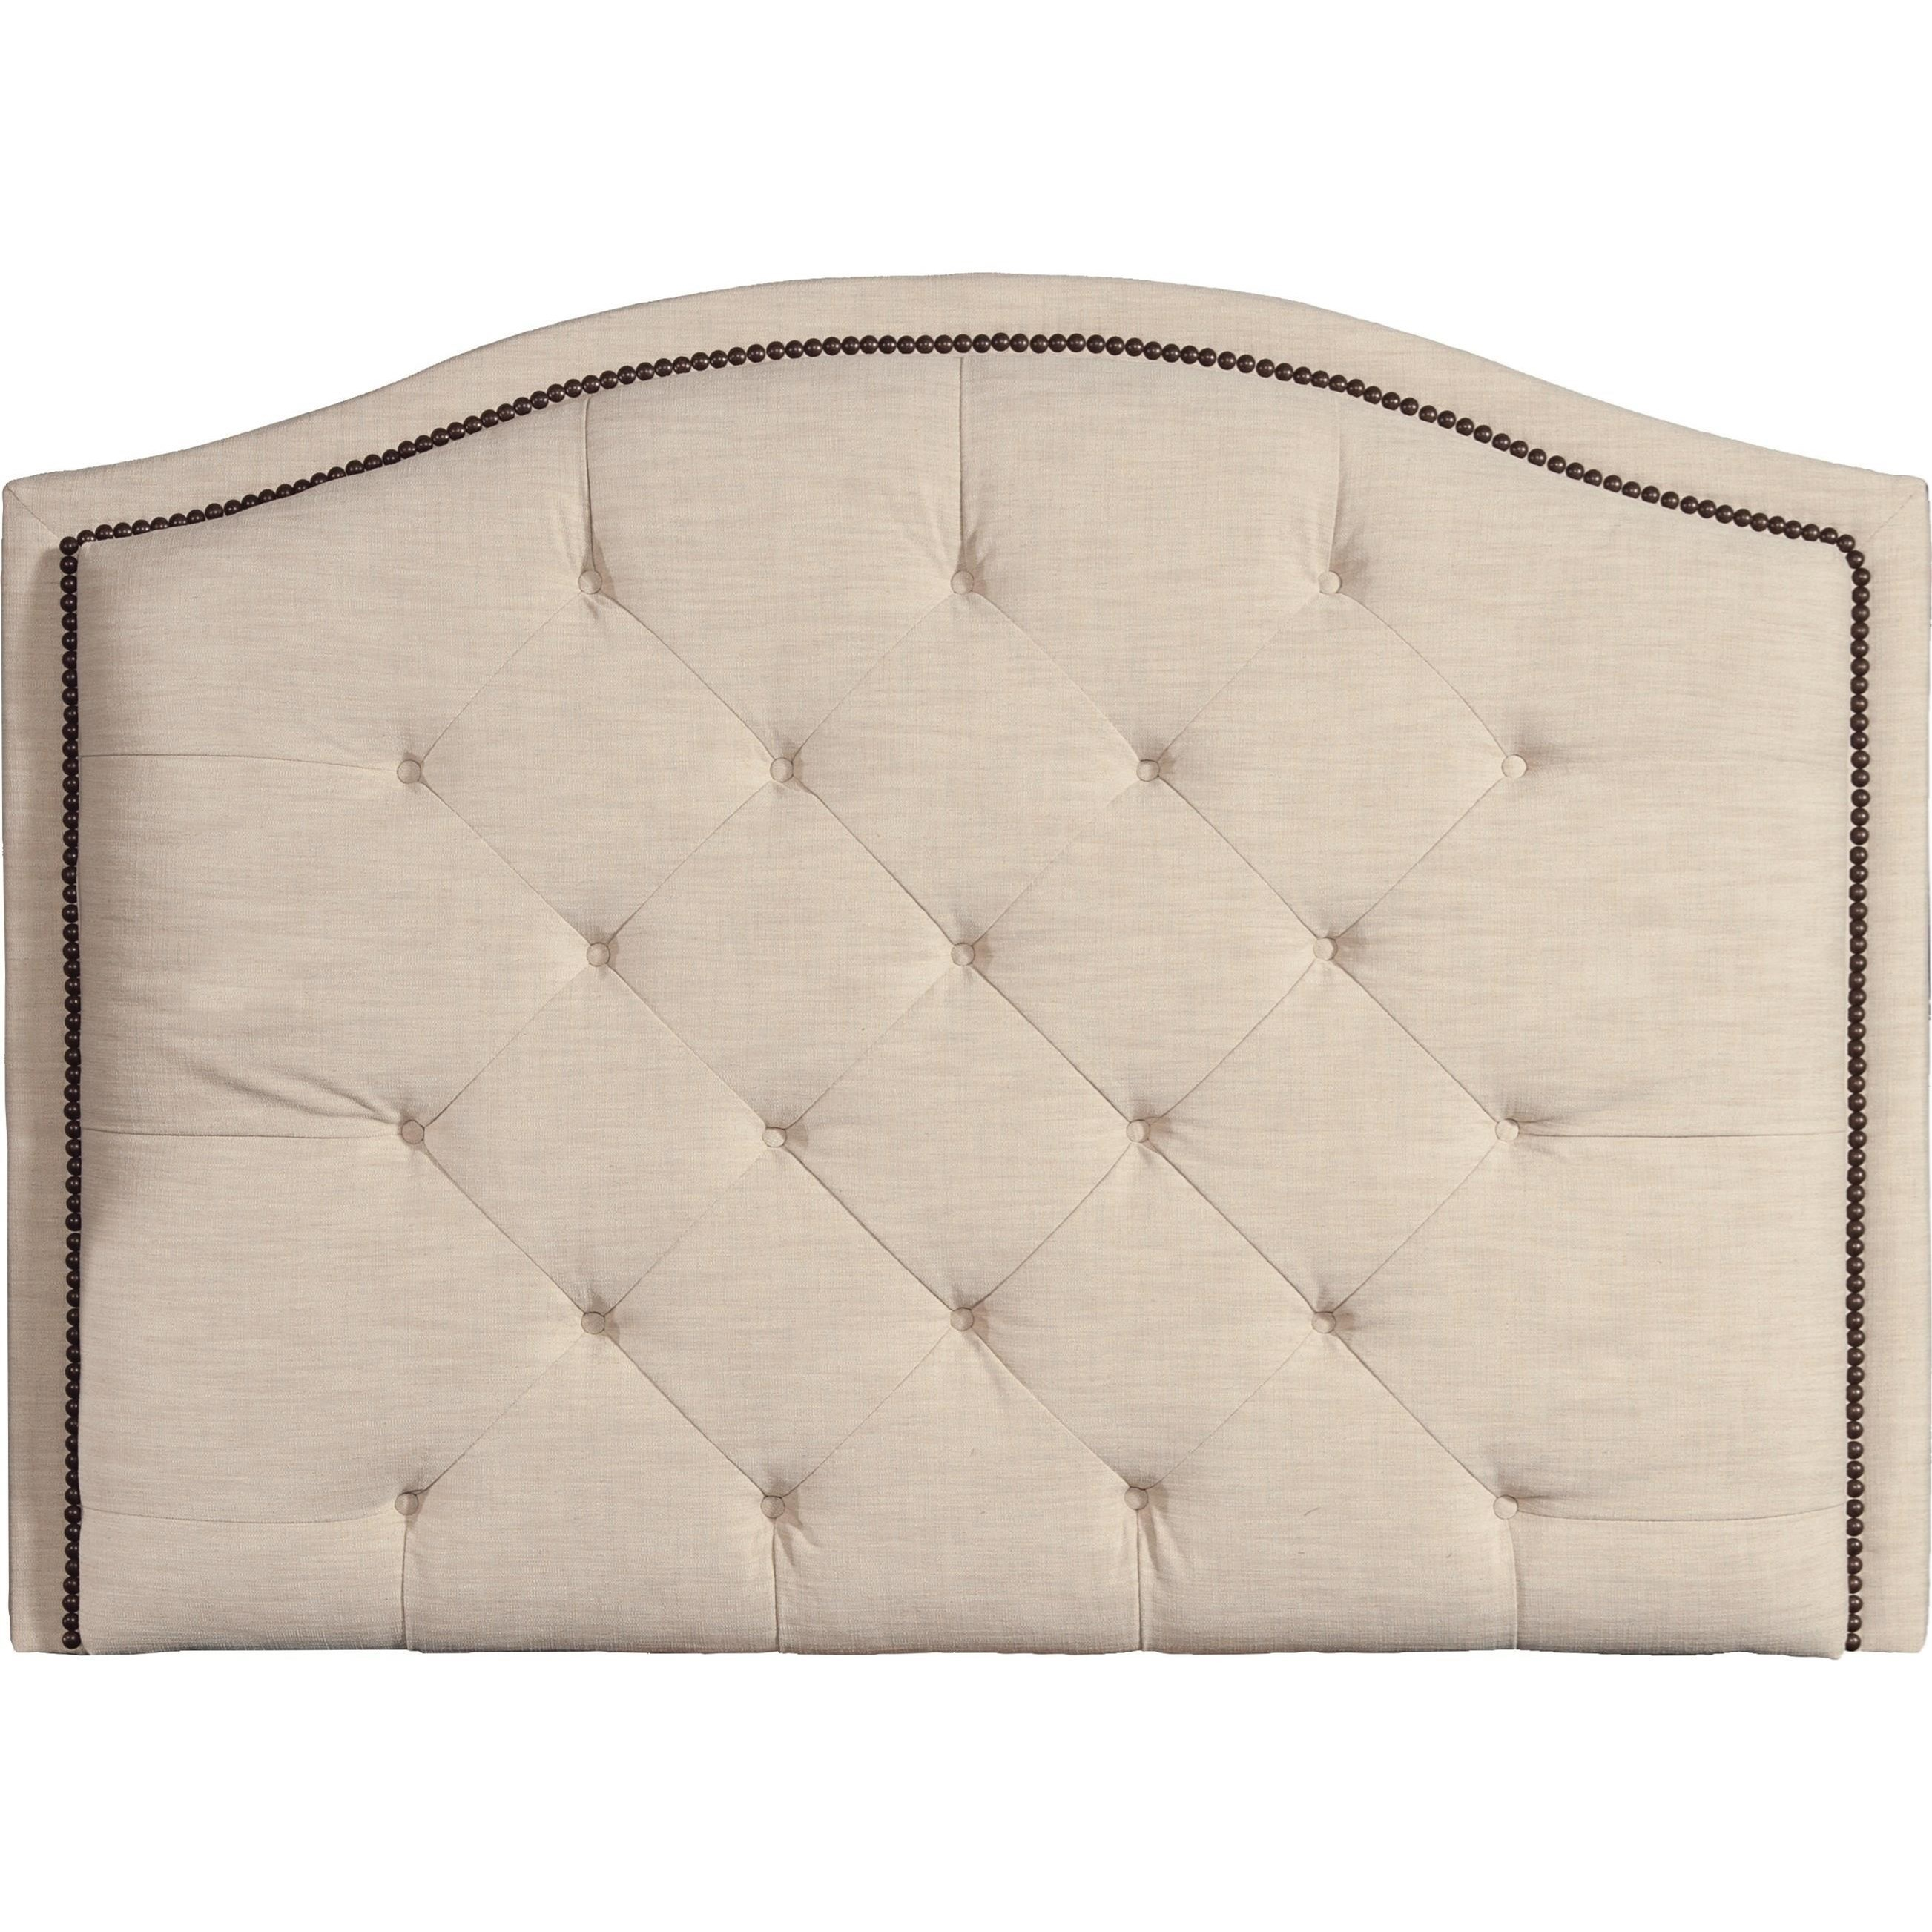 7040 Queen Headboard by Mayo at Wilcox Furniture